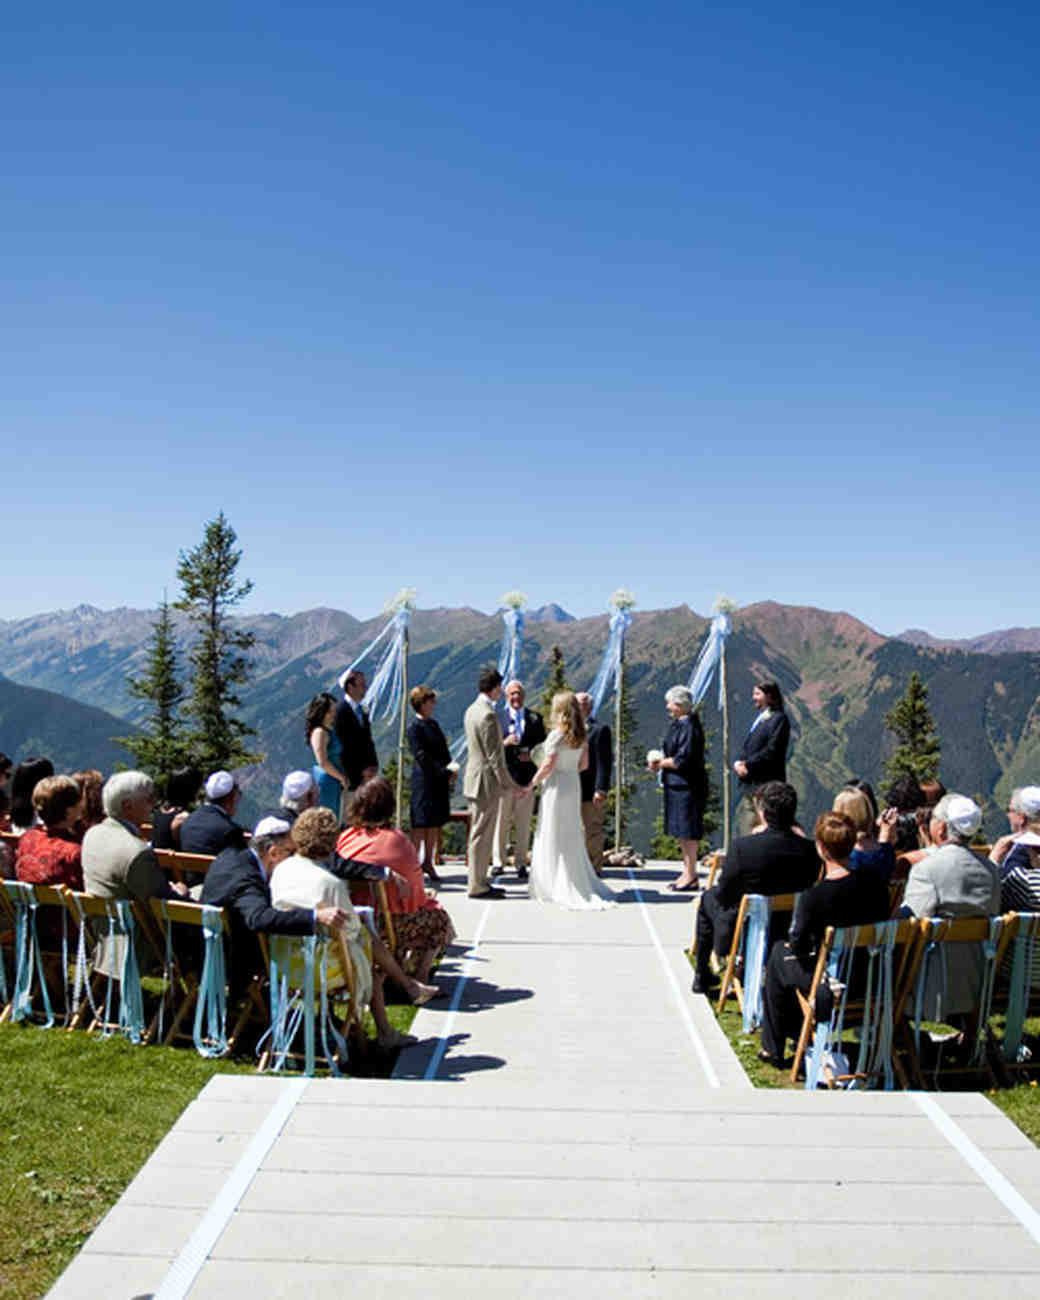 Best places for a destination wedding in the united states for Best place for wedding